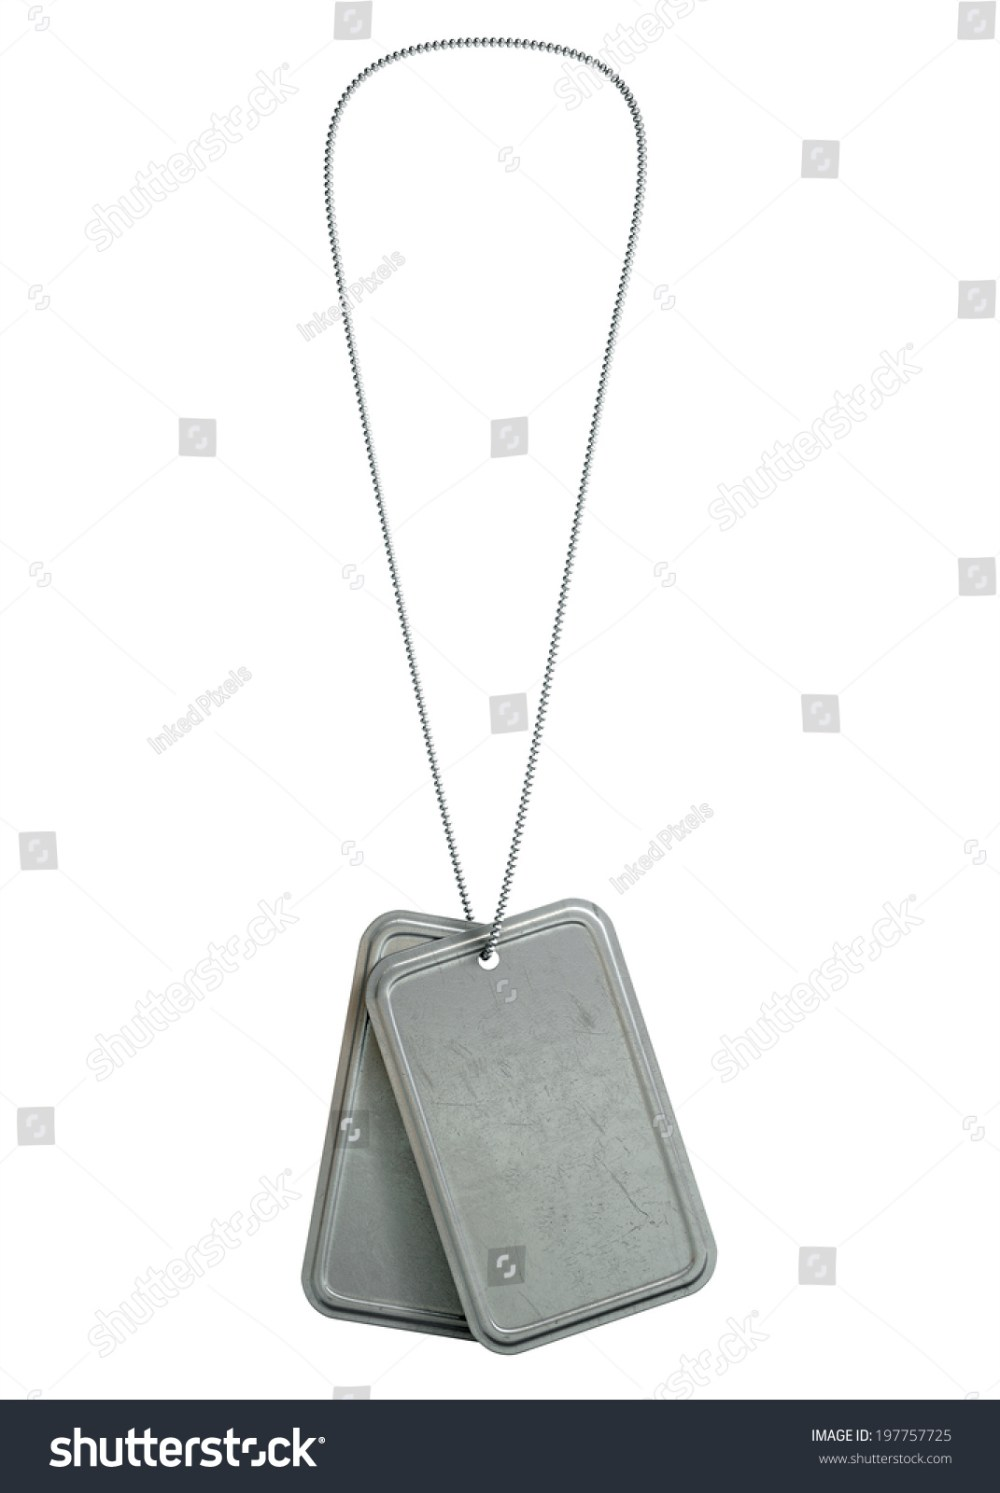 medium resolution of a regular set of blank military dog tag identity tags attached to a chain hanging on